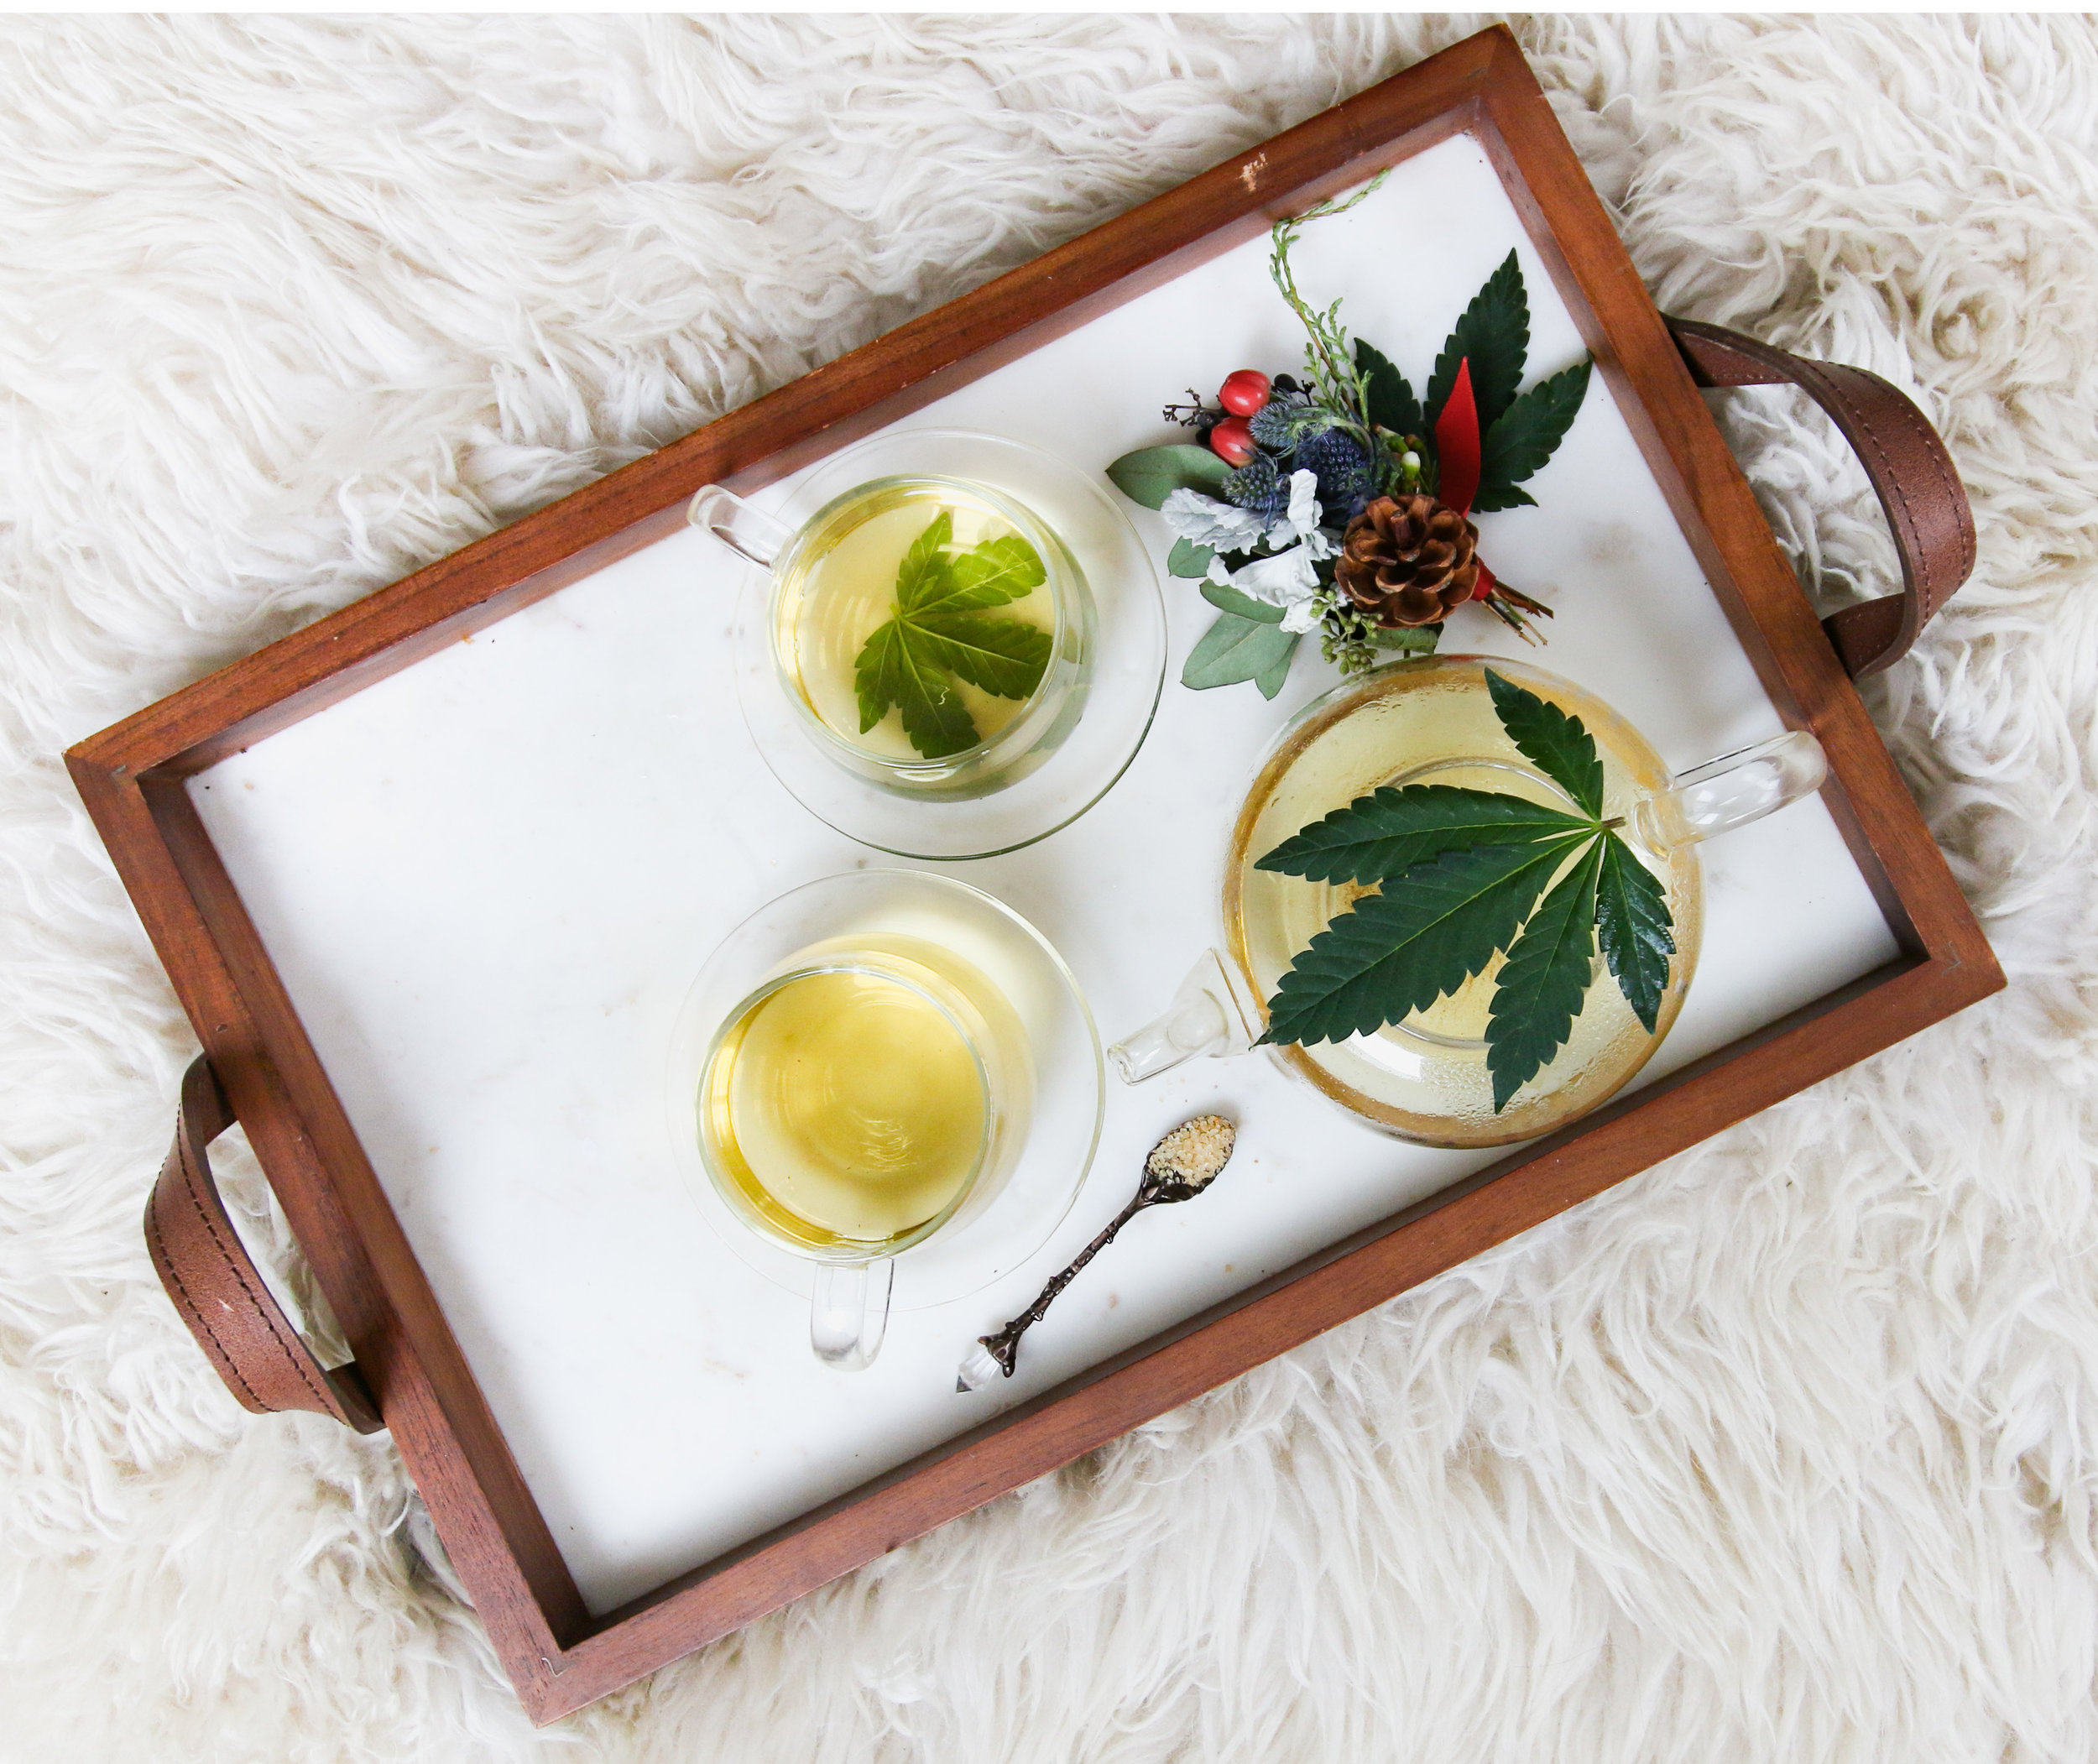 CBD Lifestyle - A brief history of hemp with an overview of the endocannabinoid system and how to support our bodies living on a toxic planet